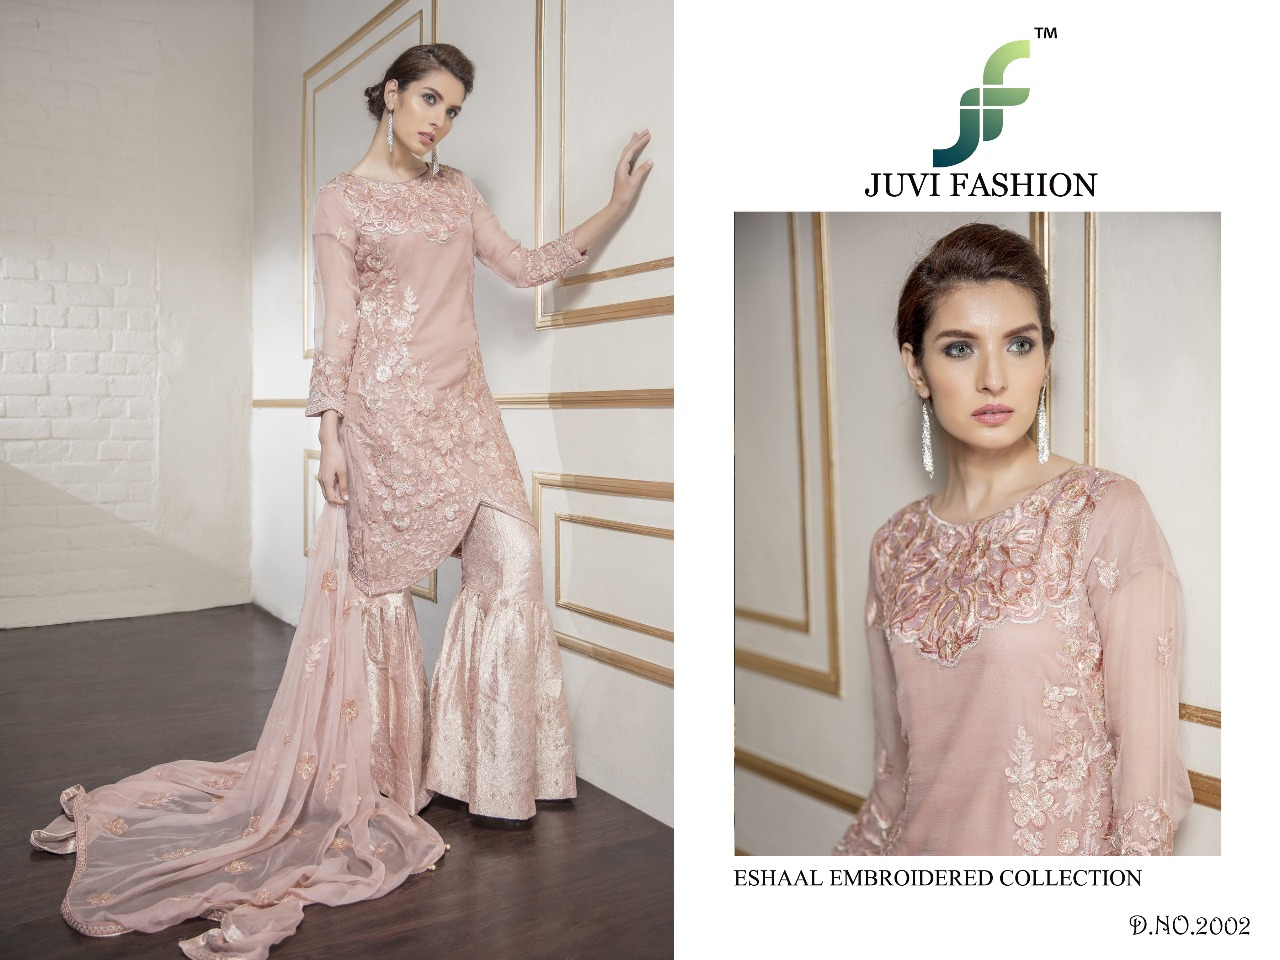 Juvi Fashion Eshaal Embroidered Collection 2002